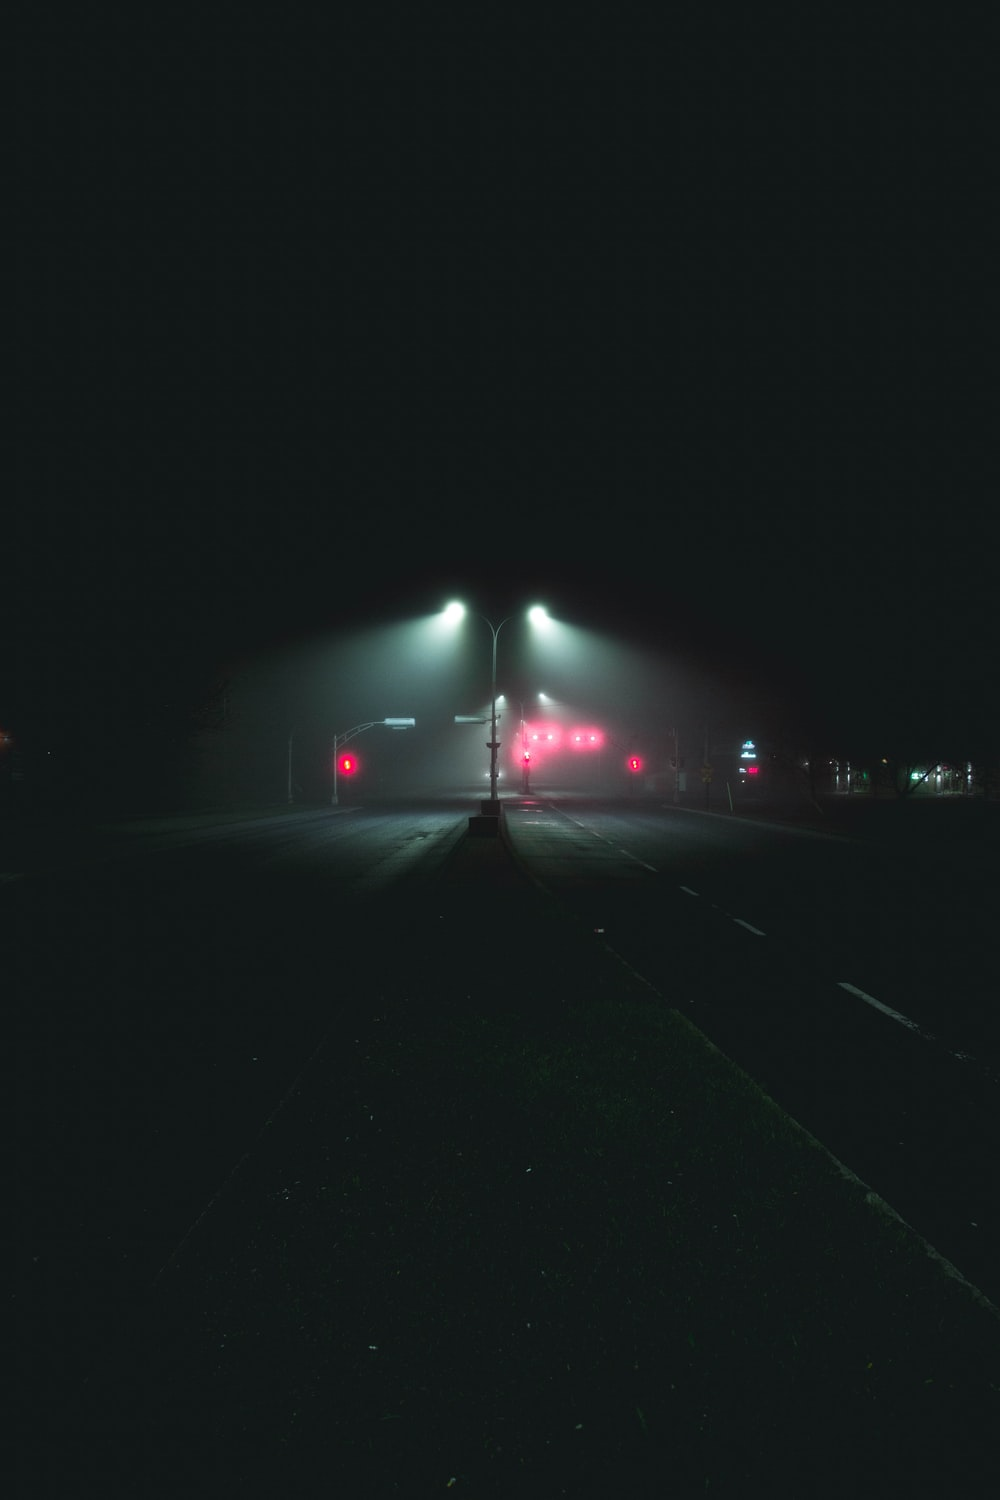 road during night